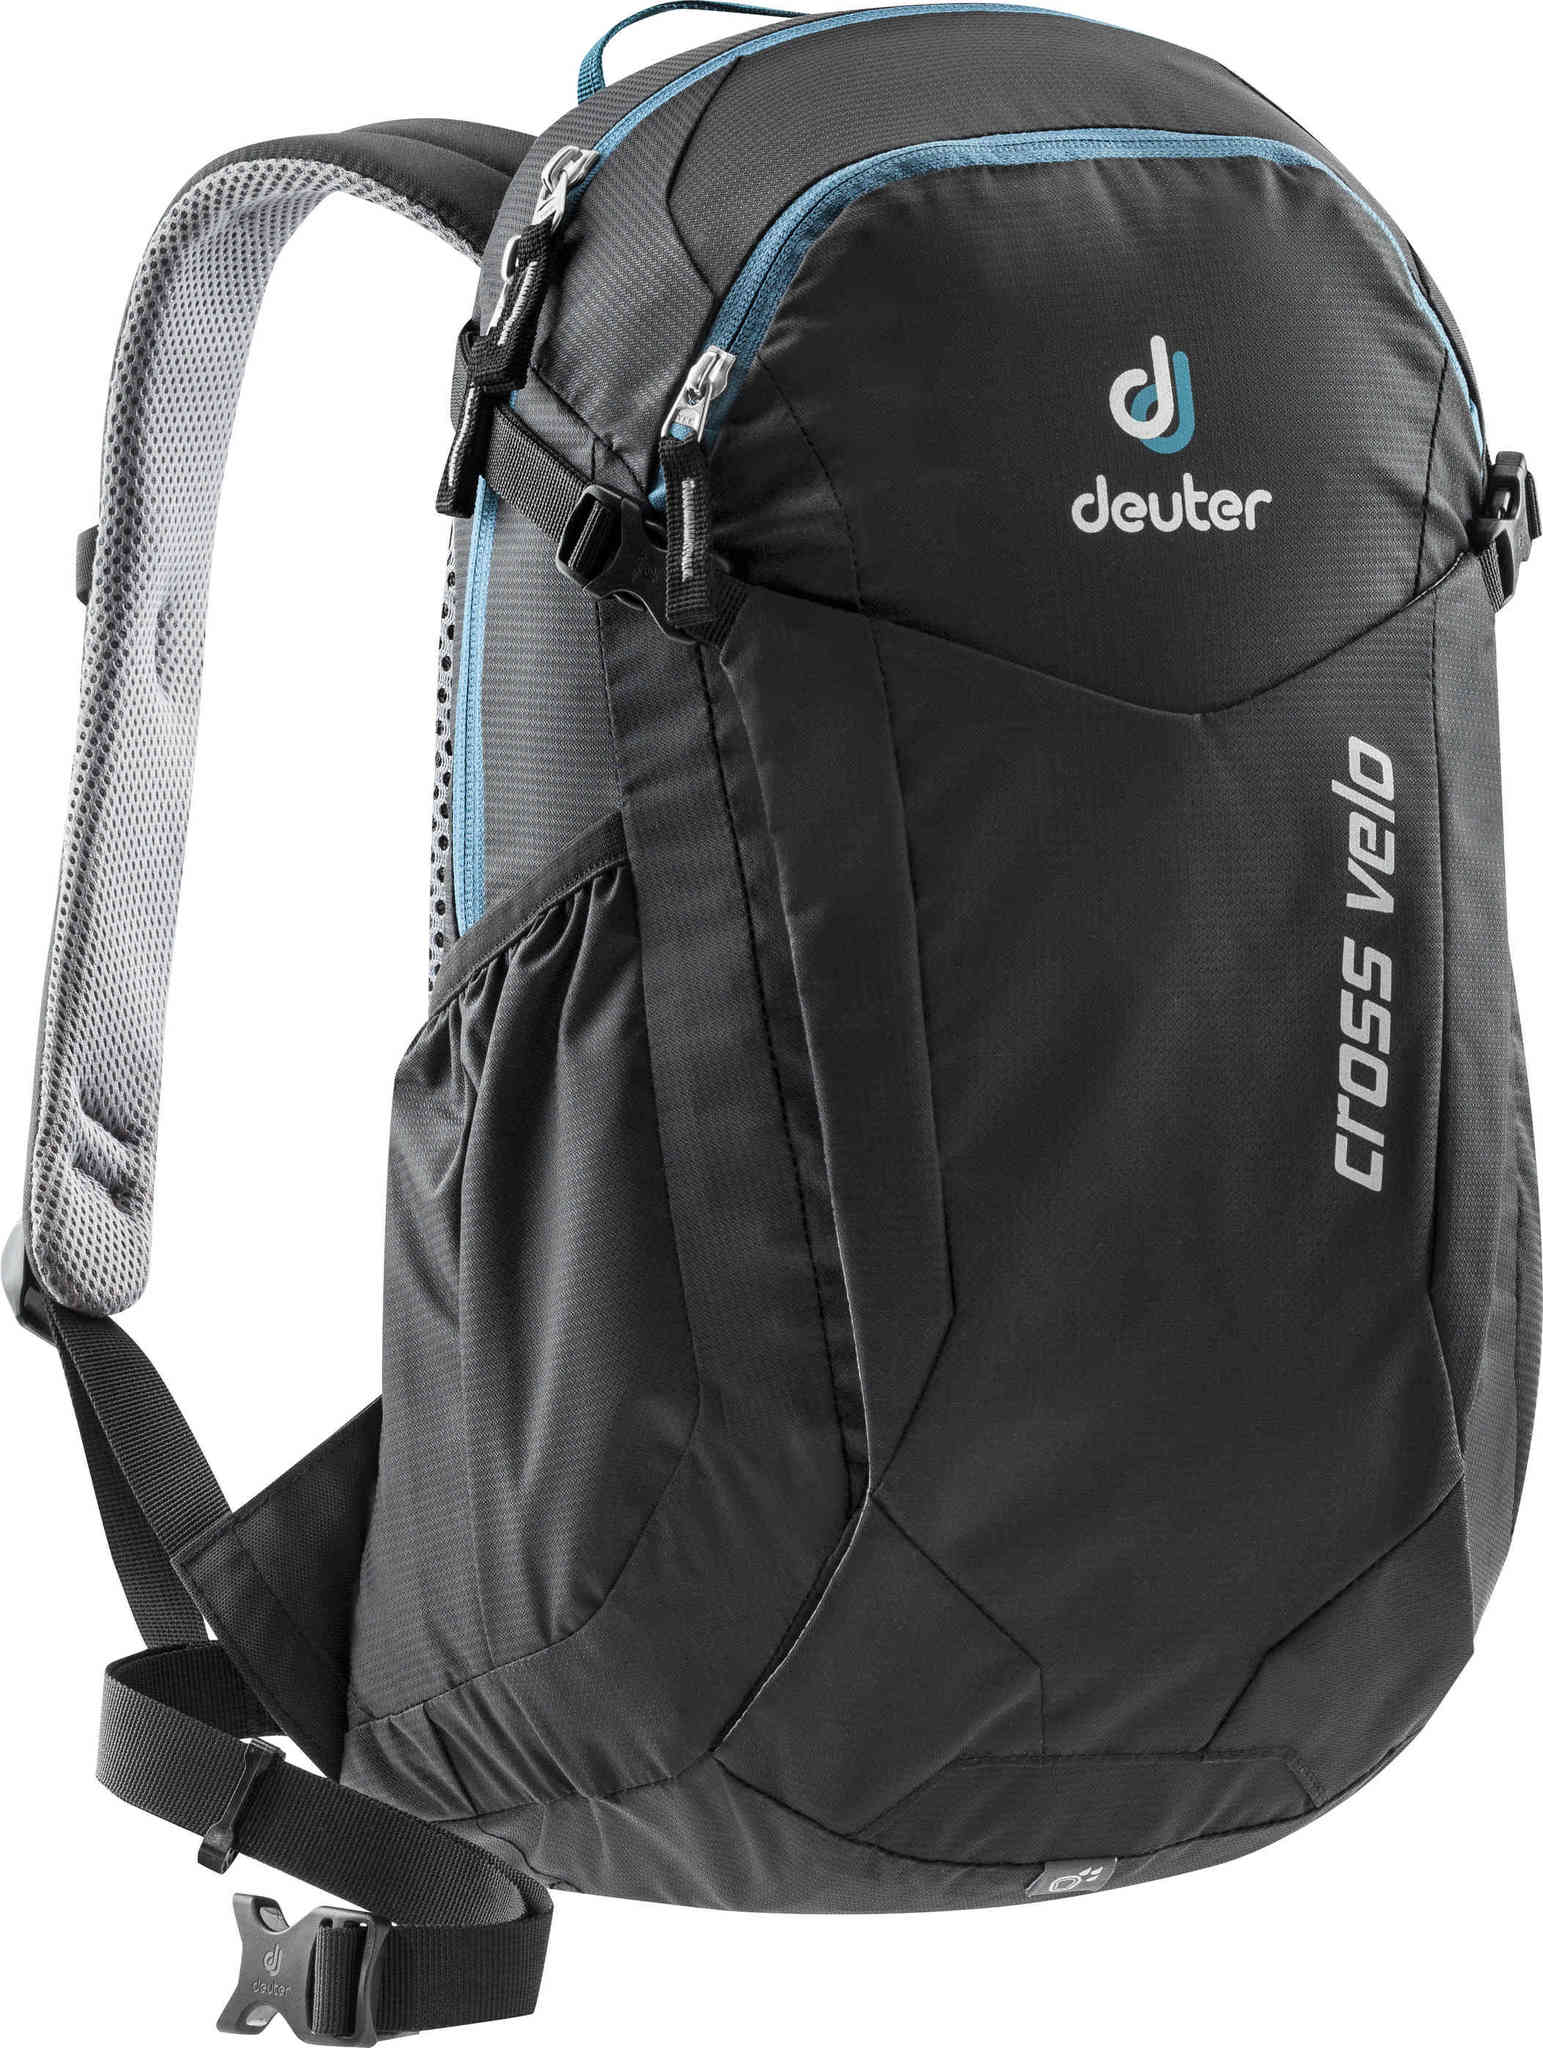 Велорюкзаки Велорюкзак Deuter Cross Velo 18 (2020) 6209020_7000.jpg